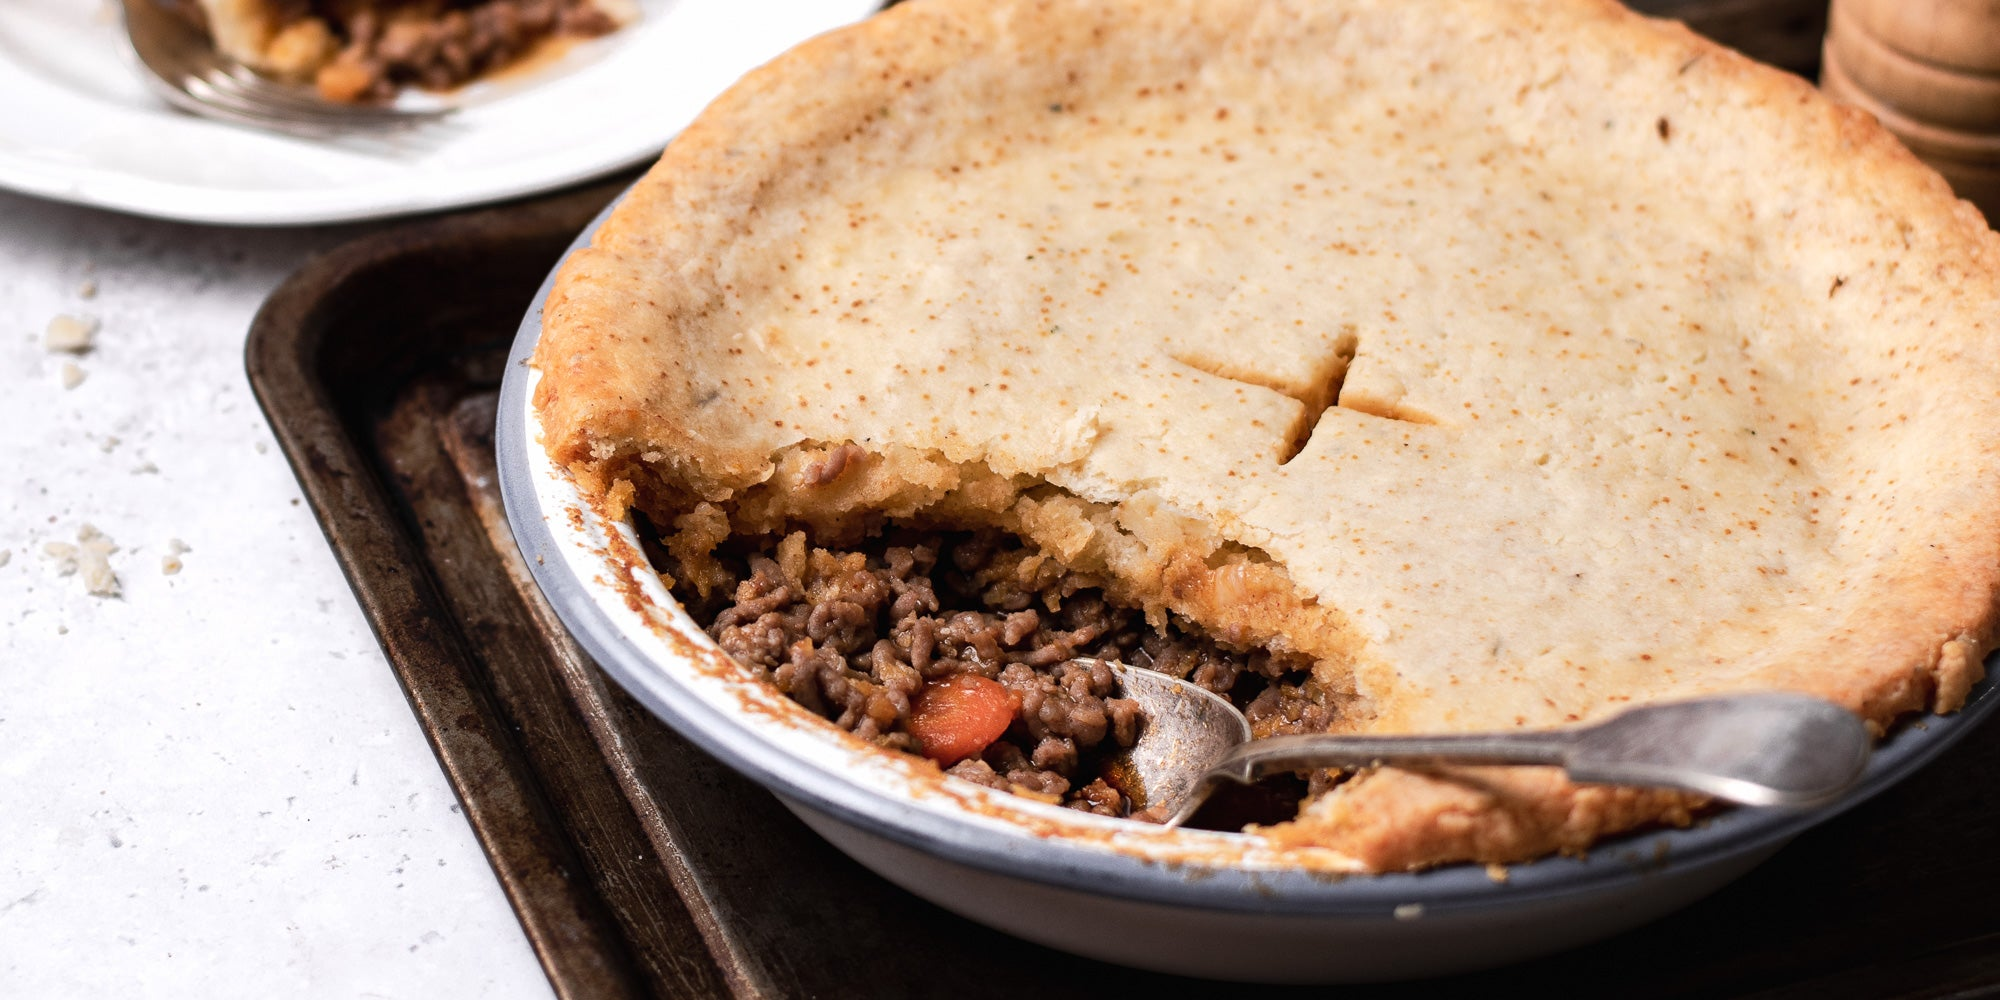 Close up of Suet Crusted Beef & Onion Pie, with the crust open and the filling being scooped out by a serving spoon. Pie is served on a baking tray